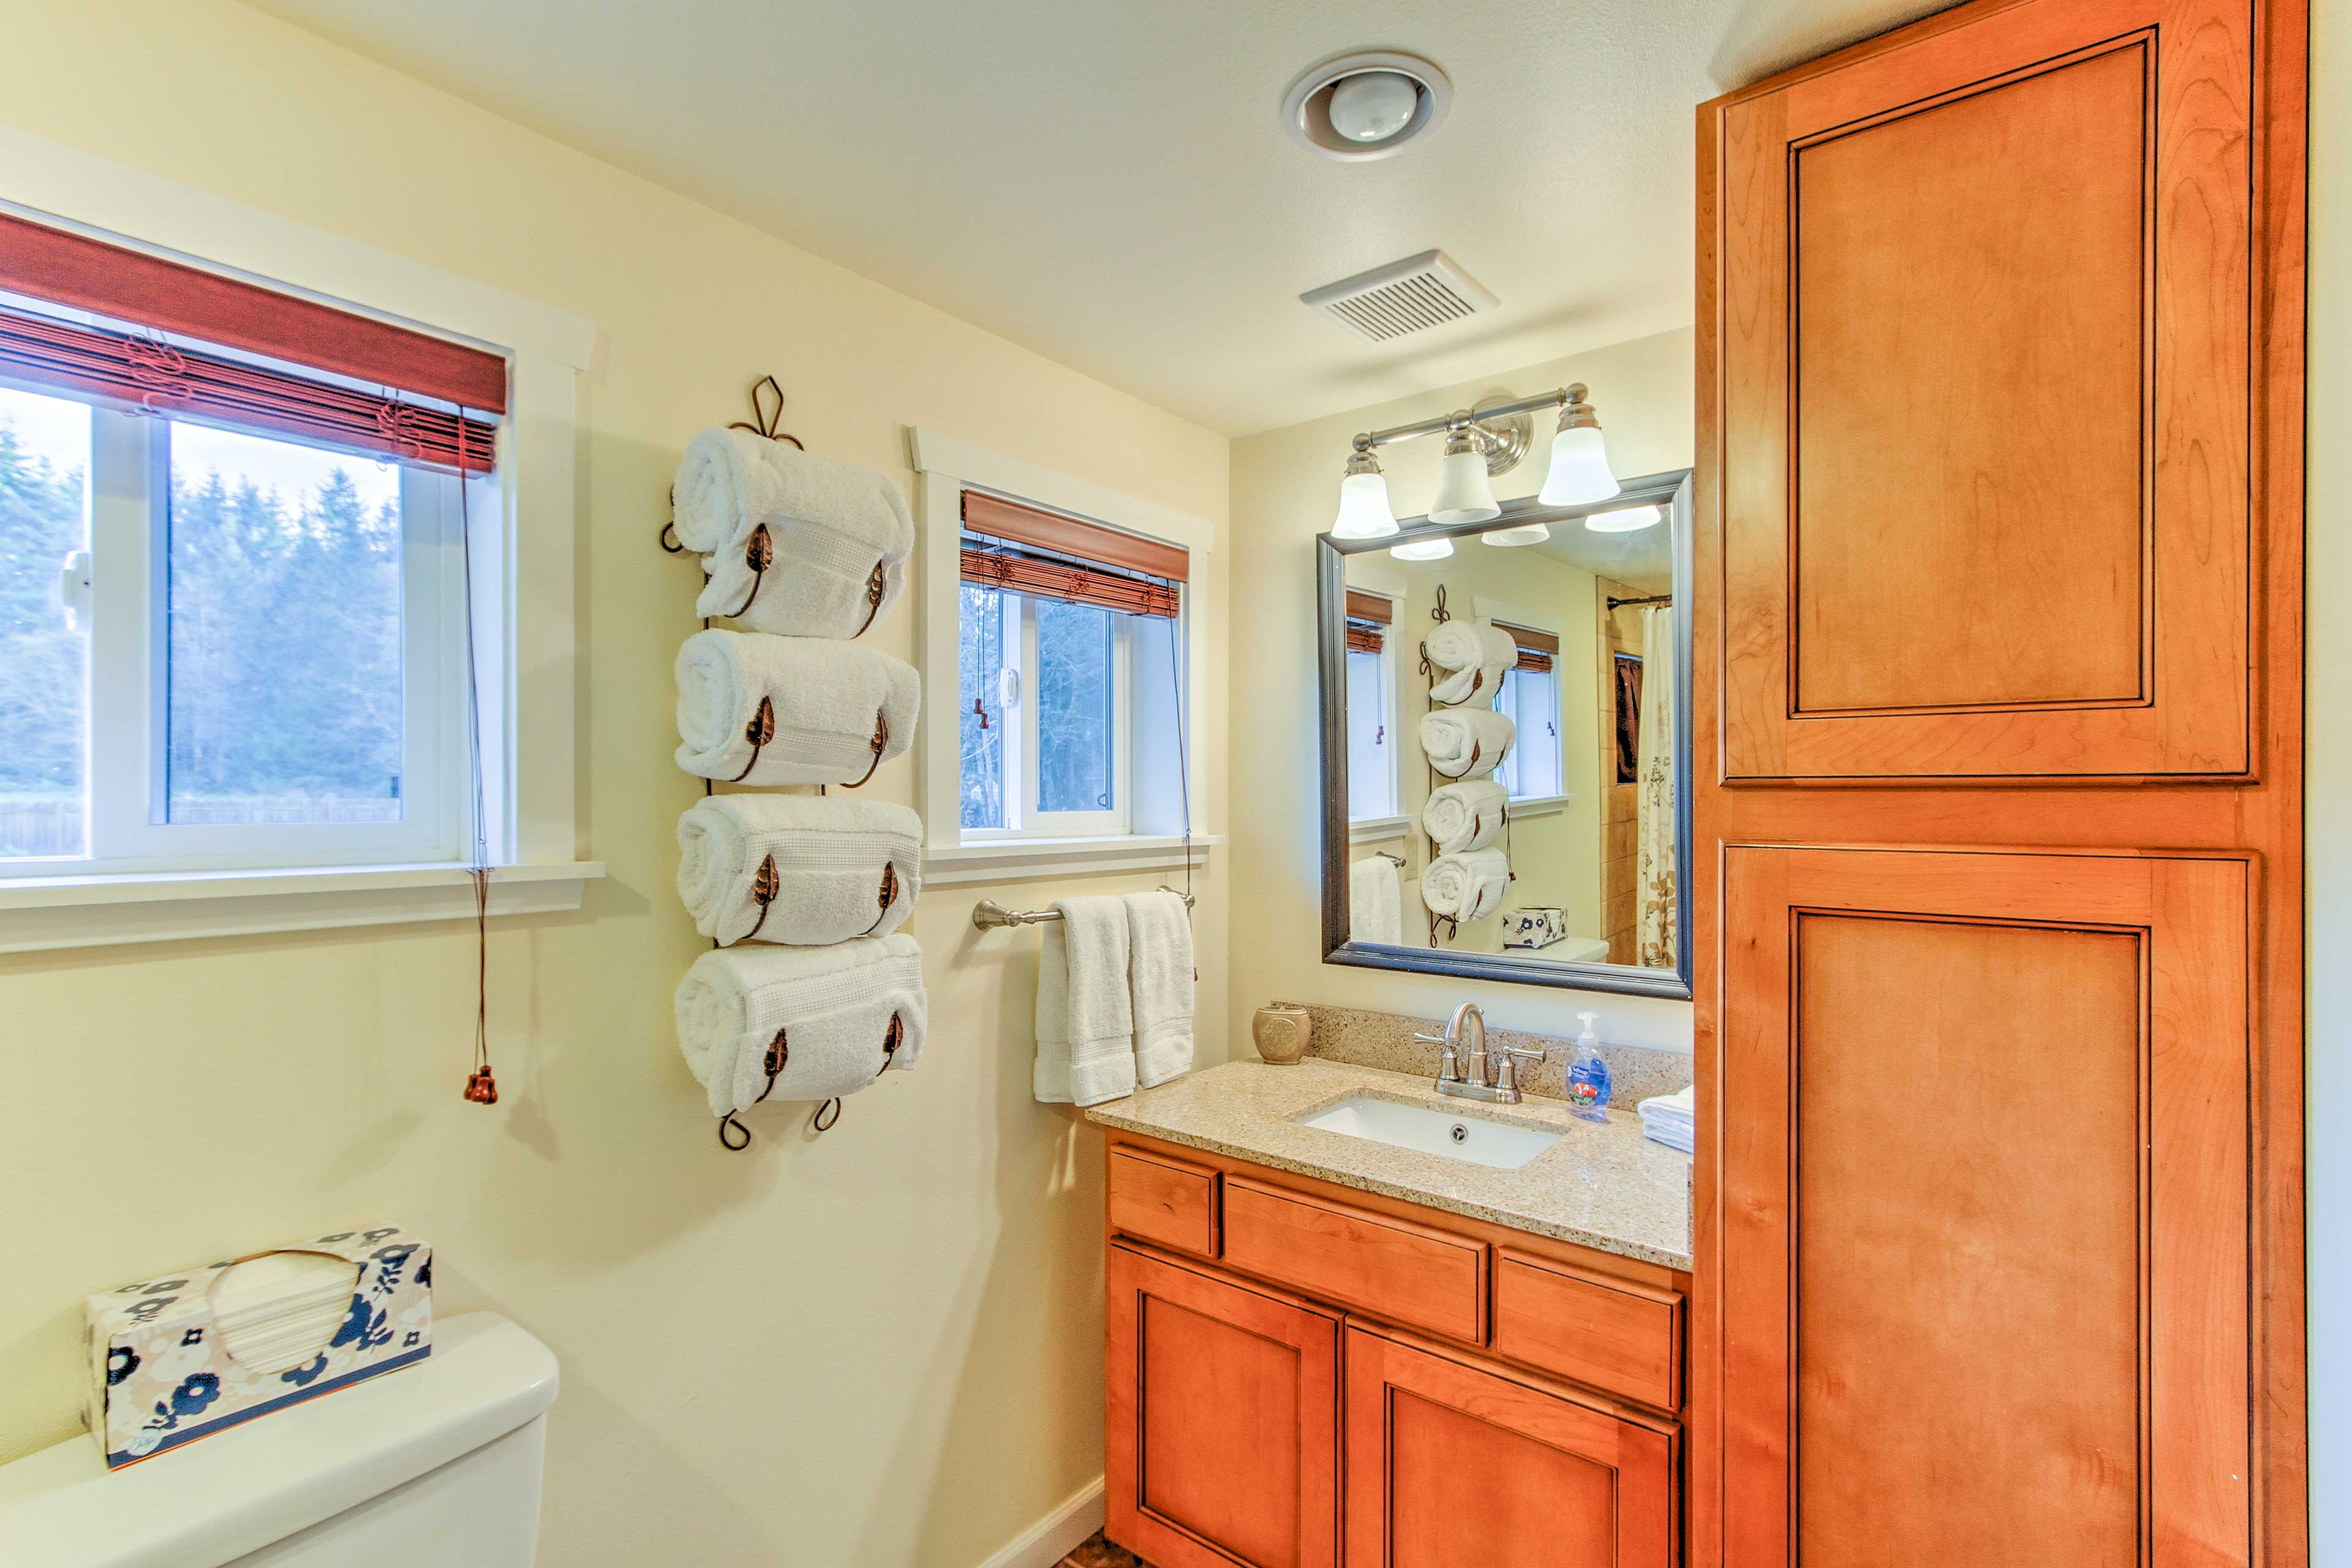 The second bathroom offers a shower/tub combo.